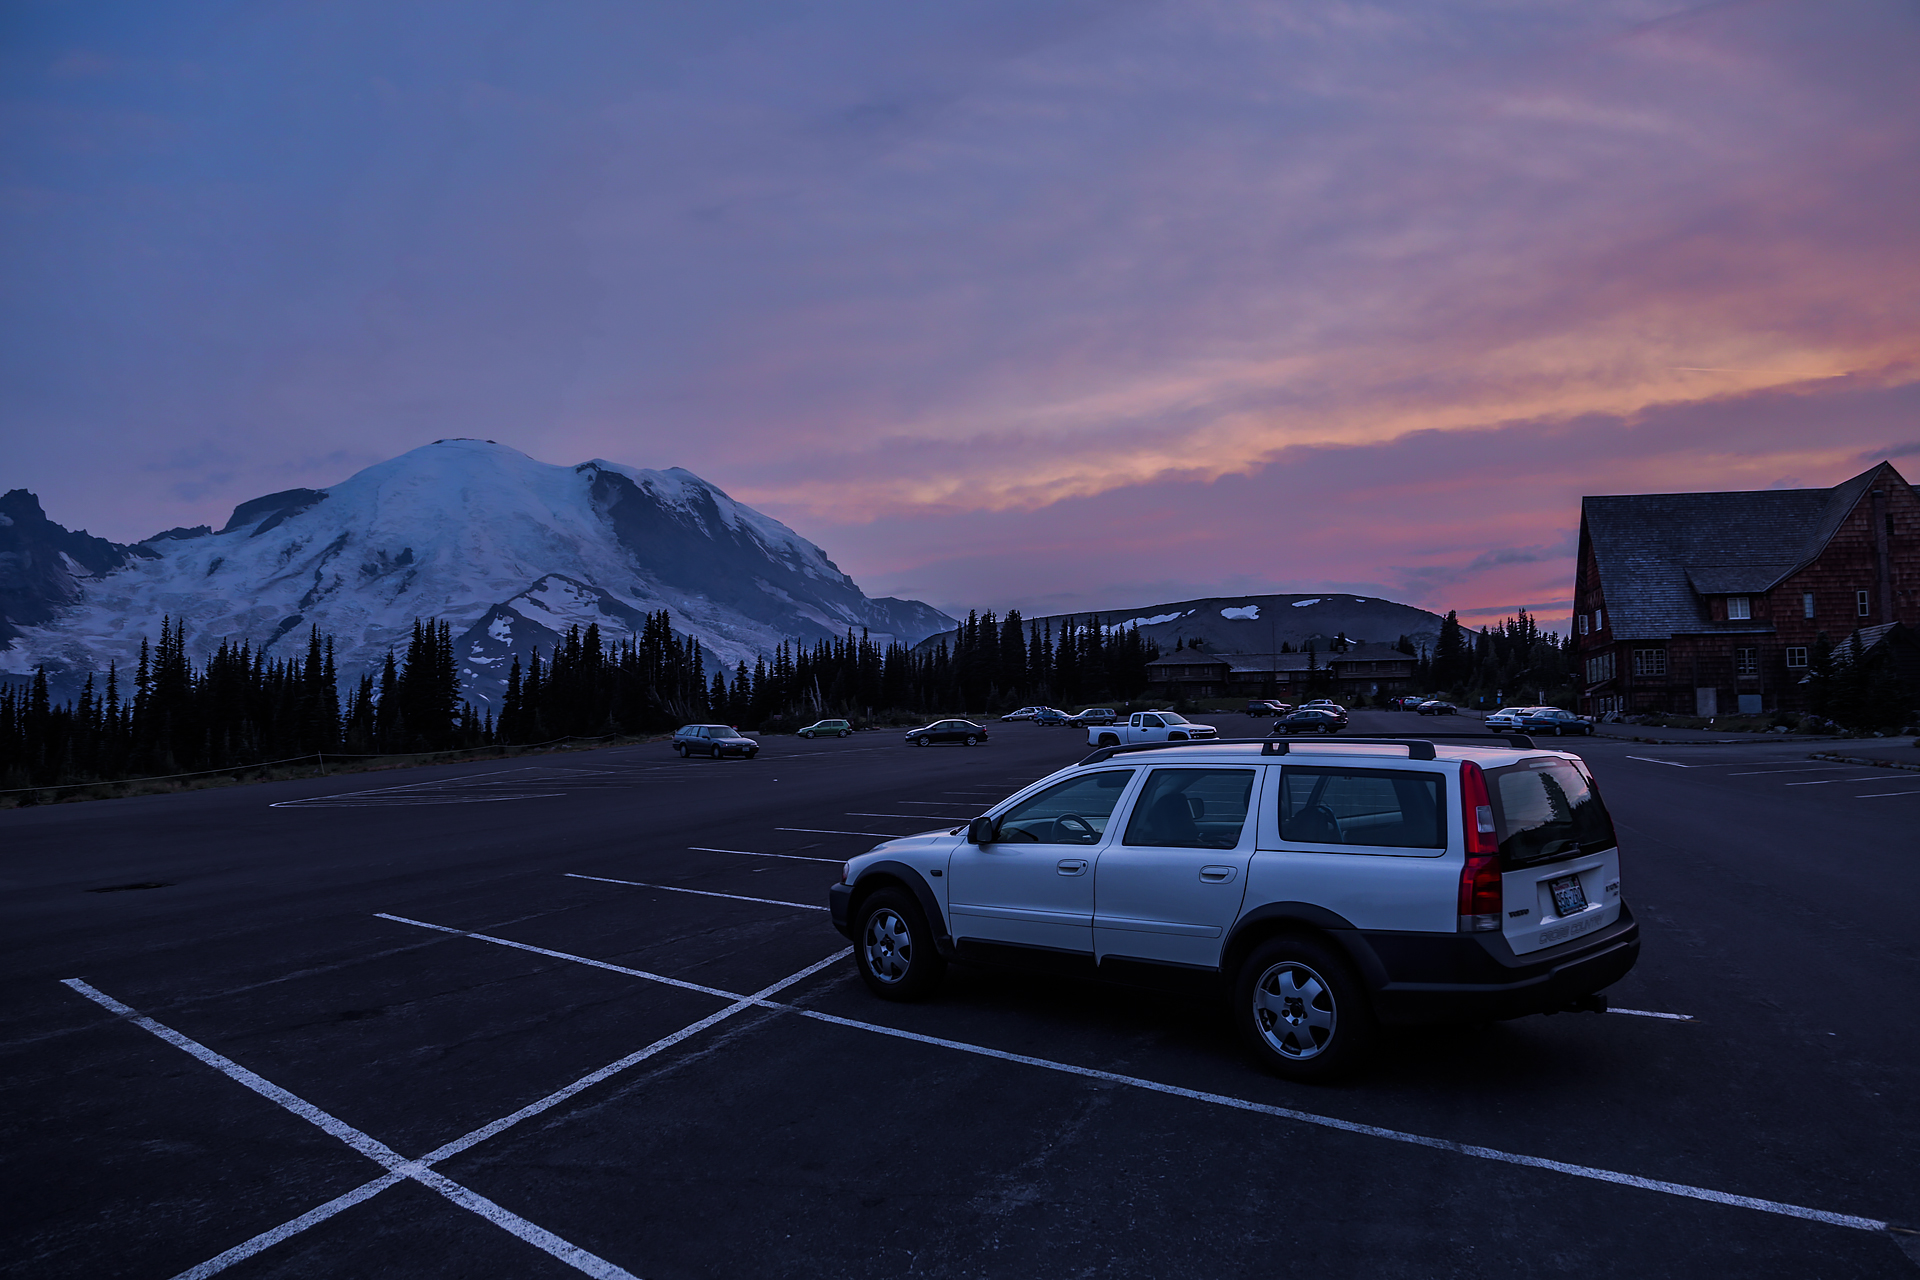 20130822-Rainier-Day-2---Sunrise-1229.jpg